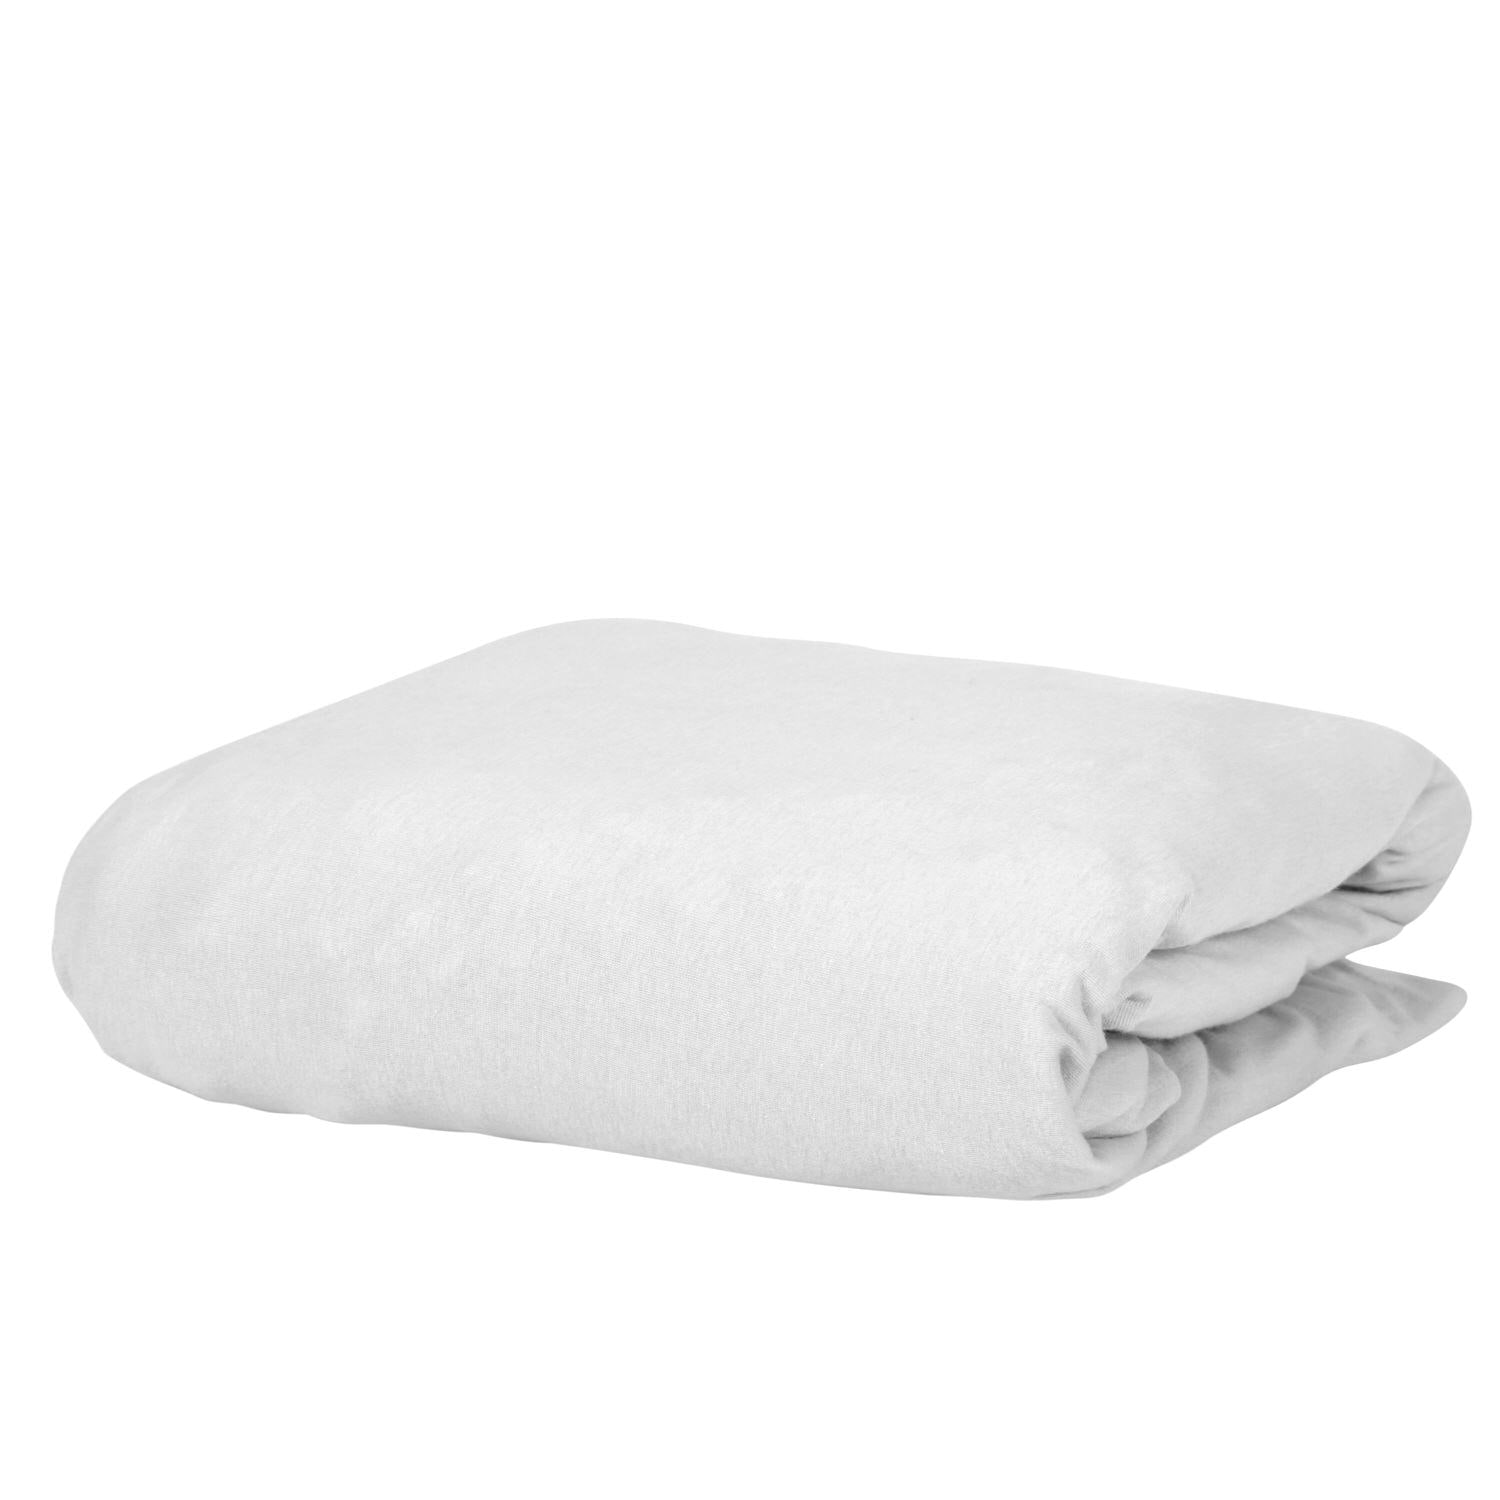 Cotton Spandex Jersey White Fitted Sheet With Antibacterial Treatment